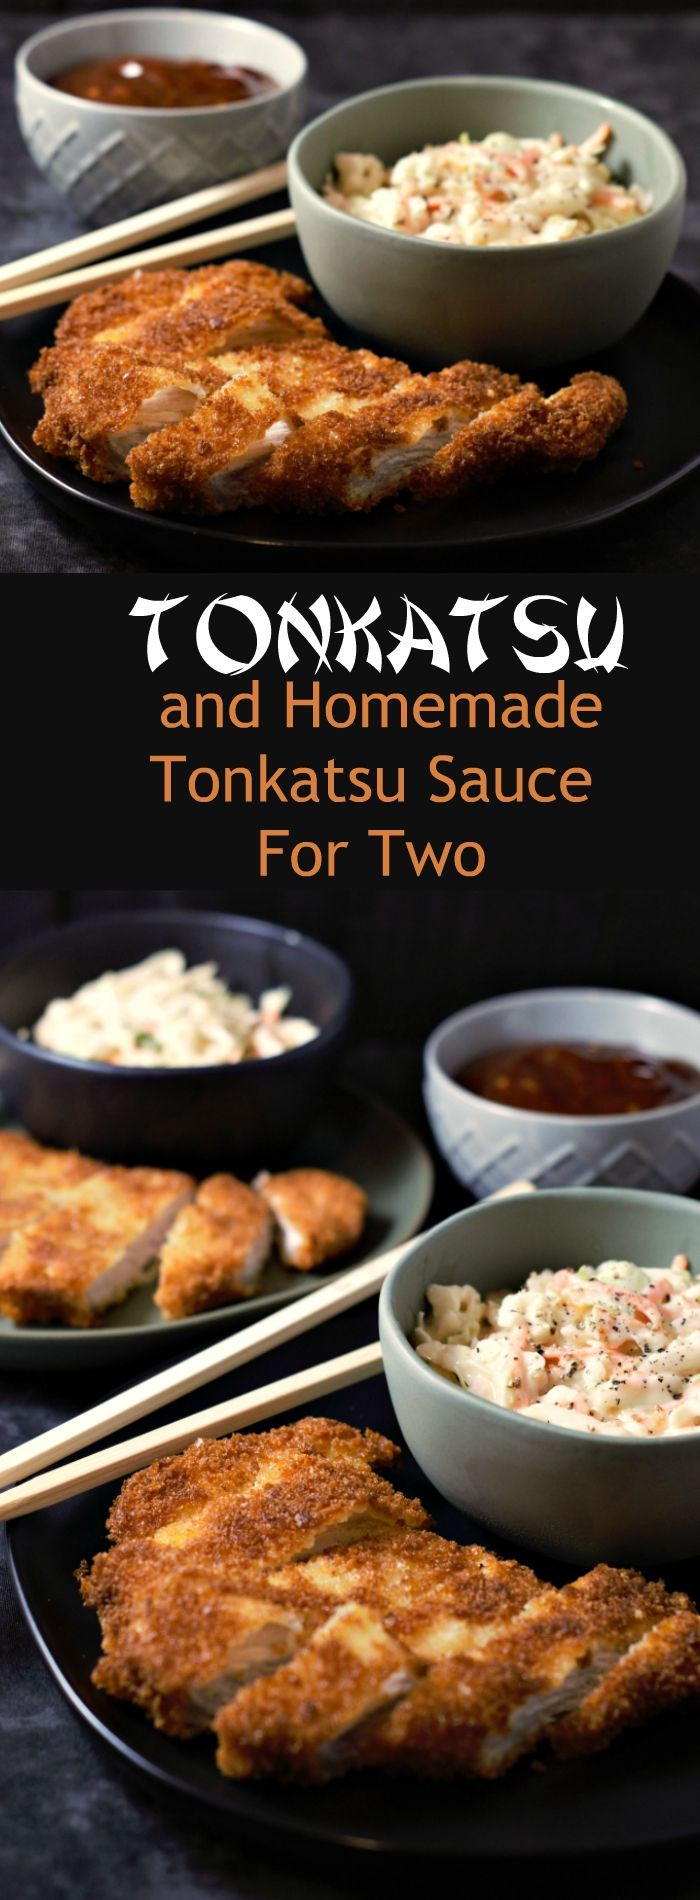 Tonkatsu and Homemade Tonkatsu Sauce for Two - This dish is super easy to make, delicious and satisfying. Tonkatsu is a Japanese dish which consists of a pork cutlet coated in Panko (Japanese bread crumbs) fried, then topped with Tonkatsu sauce. This homemade sauce is tangy and delicious. You can also use chicken instead of pork using this same recipe. Great for dinner, lunch, or date night! #tonkatsu #TonkatsuSauce #homemade #pork #chicken #DinnerForTwo #LunchForTwo #RecipesForTwo